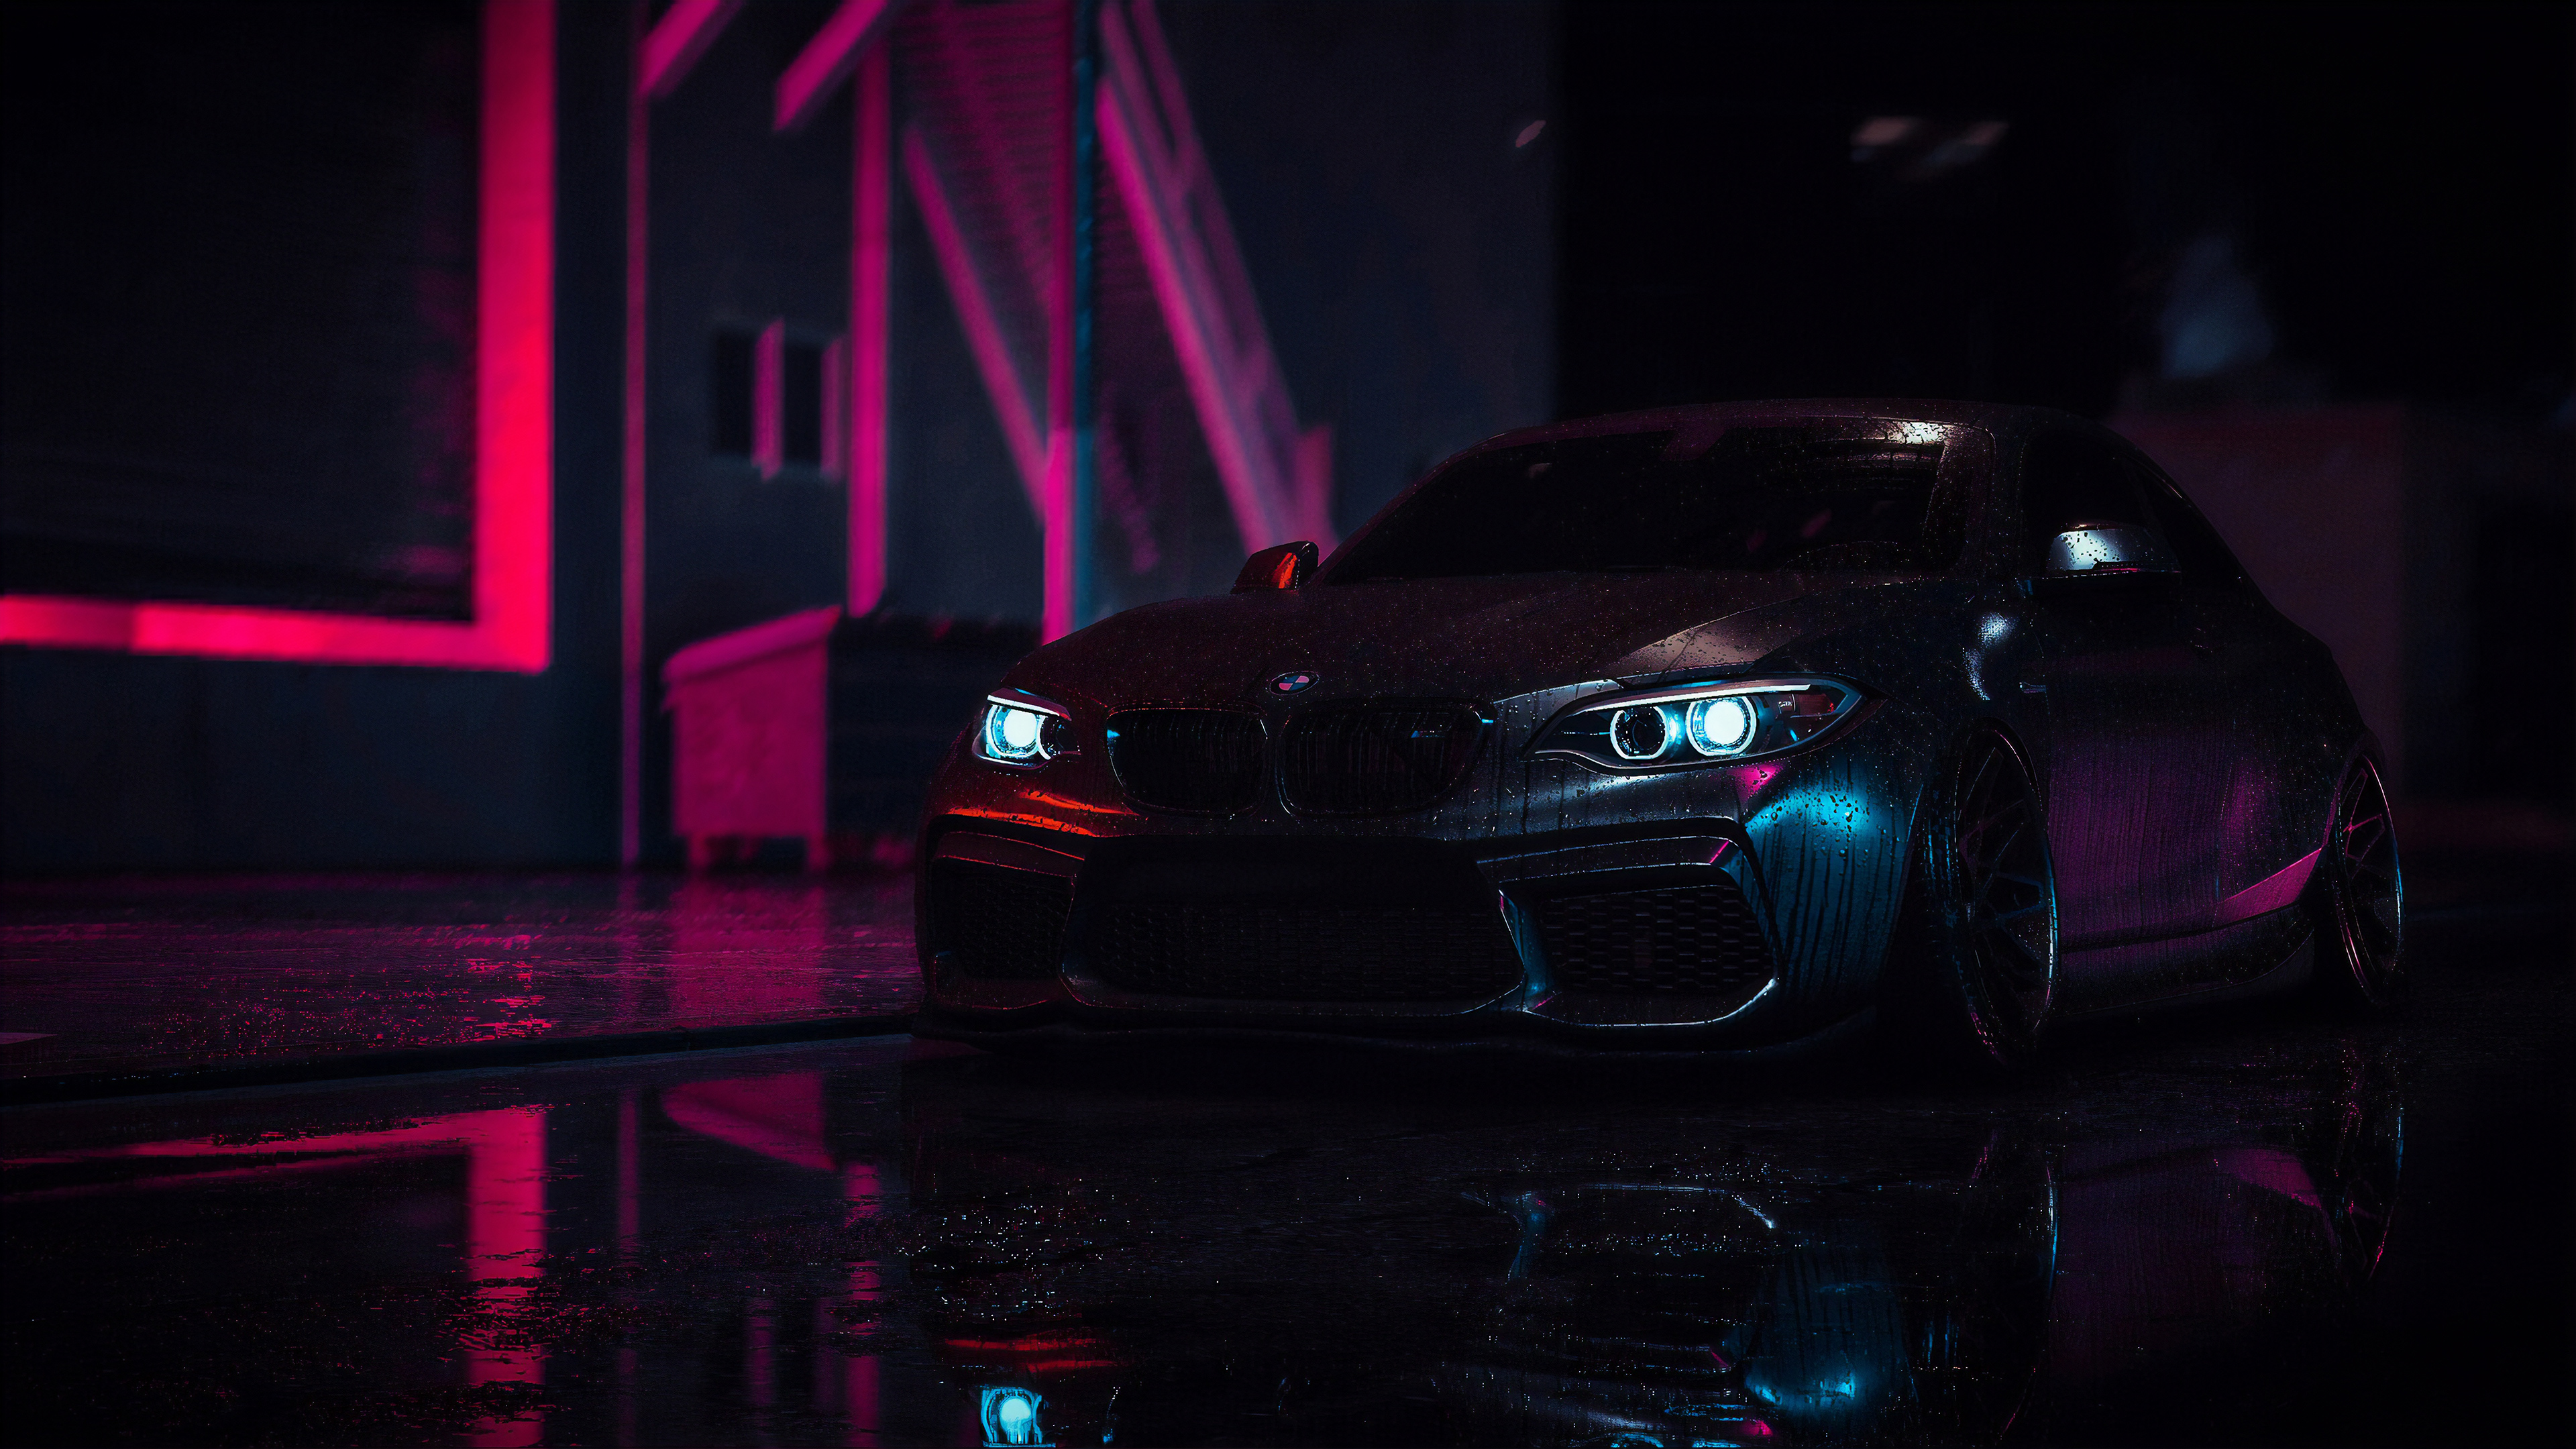 bmw m2 nfs raining 1570392220 - Bmw M2 Nfs Raining - need for speed wallpapers, hd-wallpapers, games wallpapers, cars wallpapers, bmw wallpapers, bmw m2 wallpapers, artstation wallpapers, 4k-wallpapers